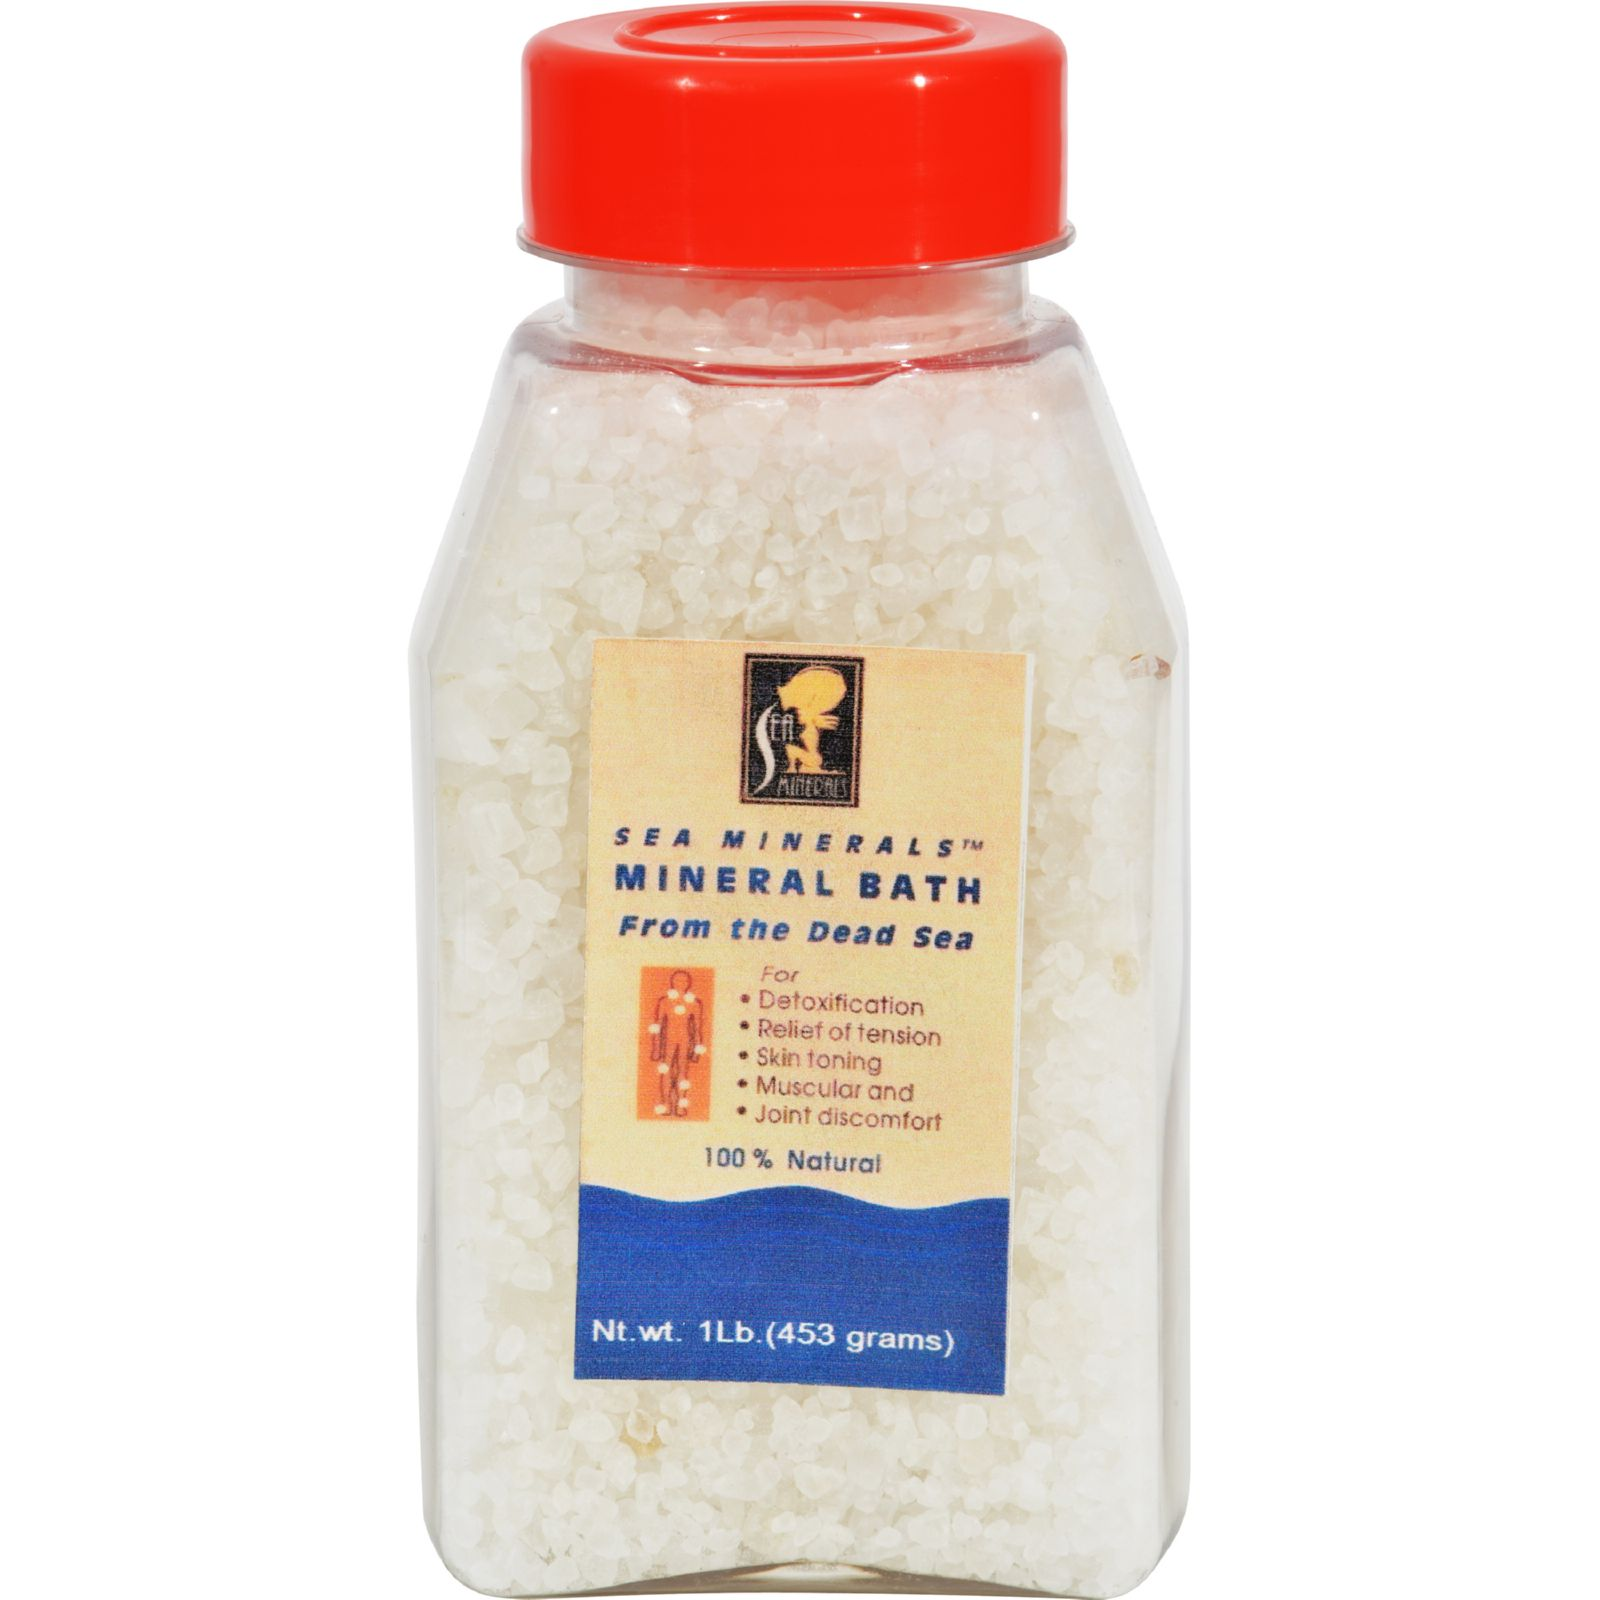 Sea Minerals Mineral Bath - 16 oz